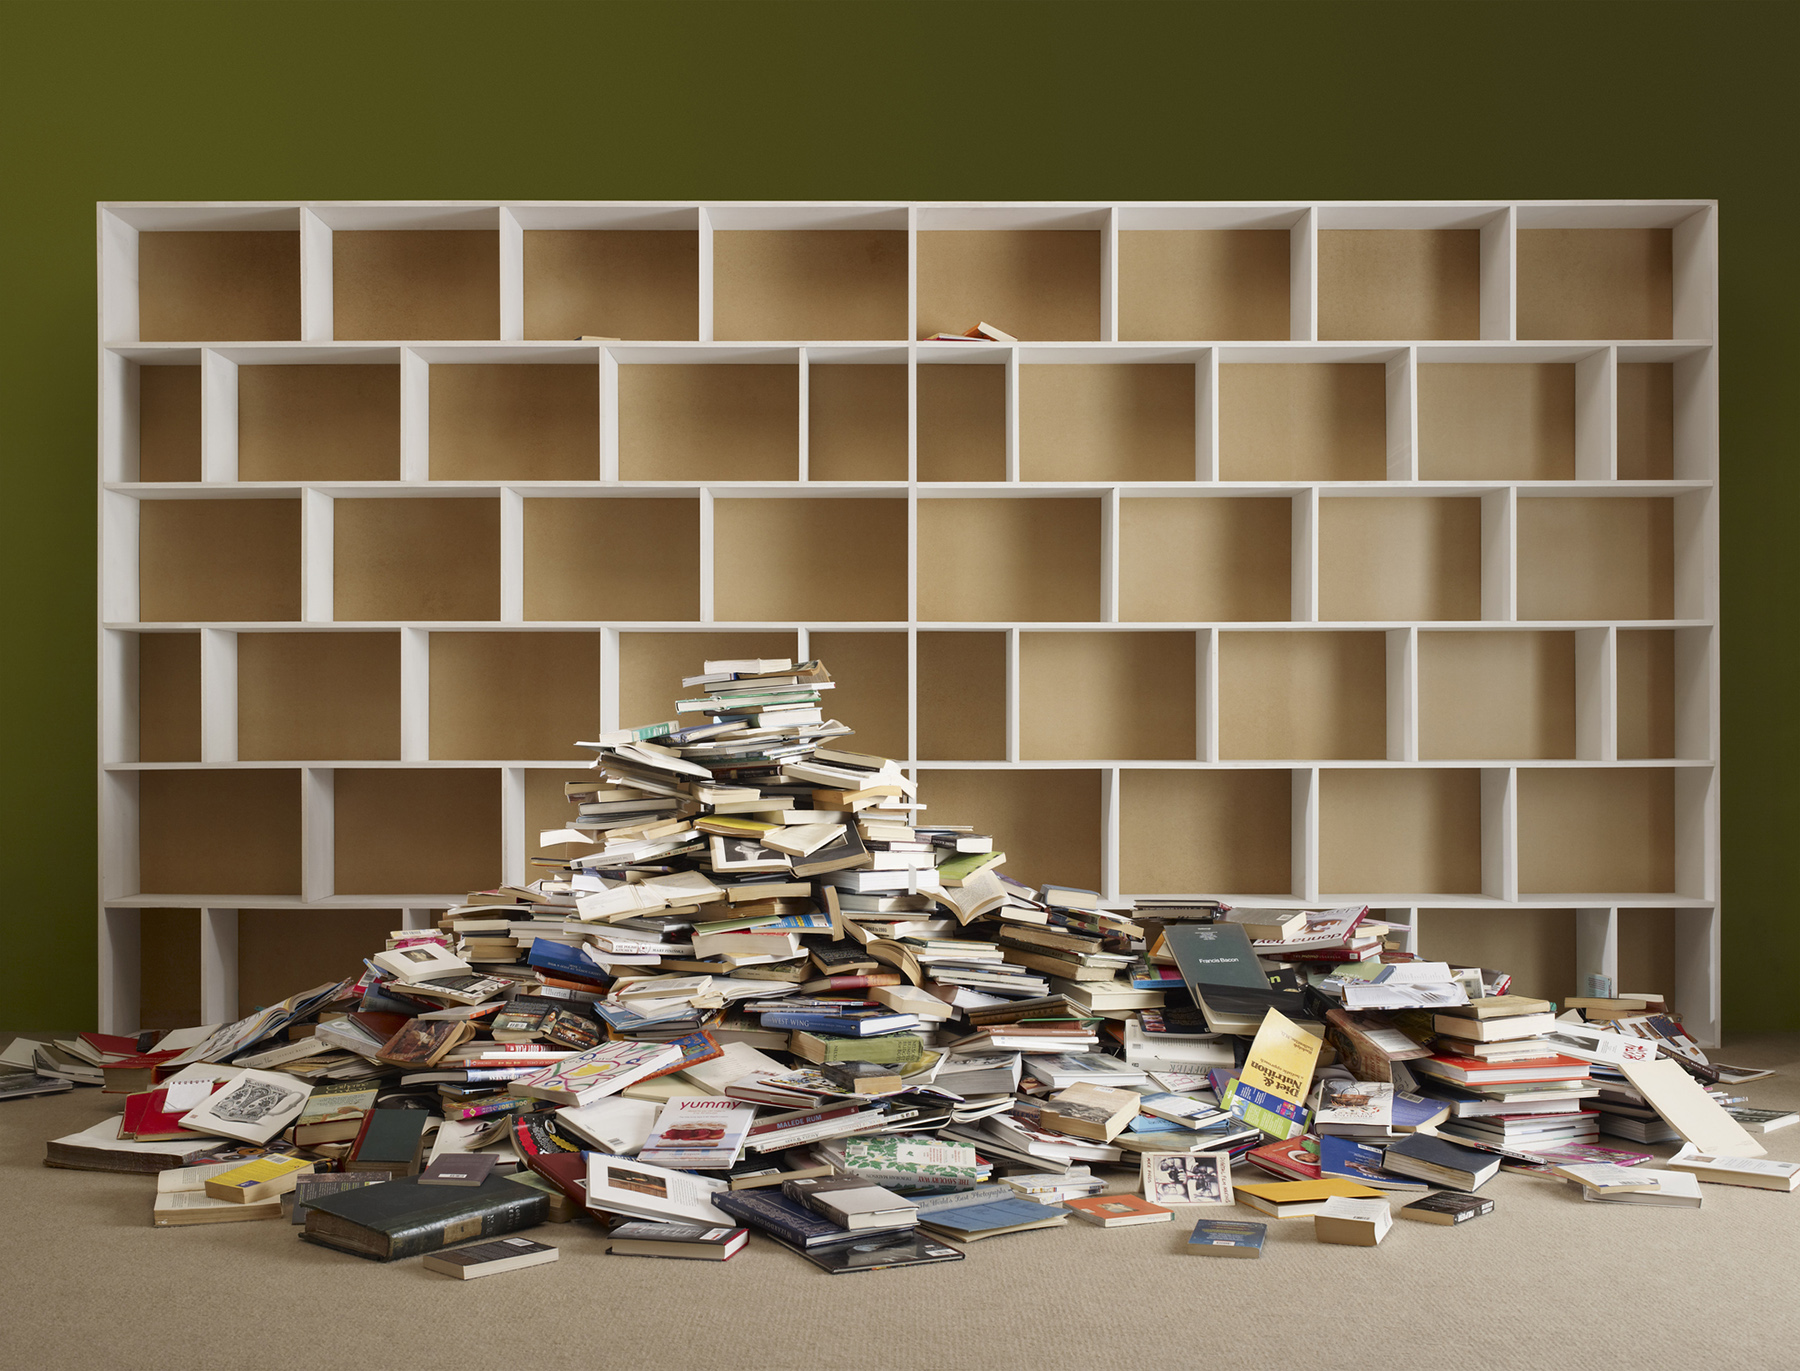 Giant pile of books by an empty bookshelf